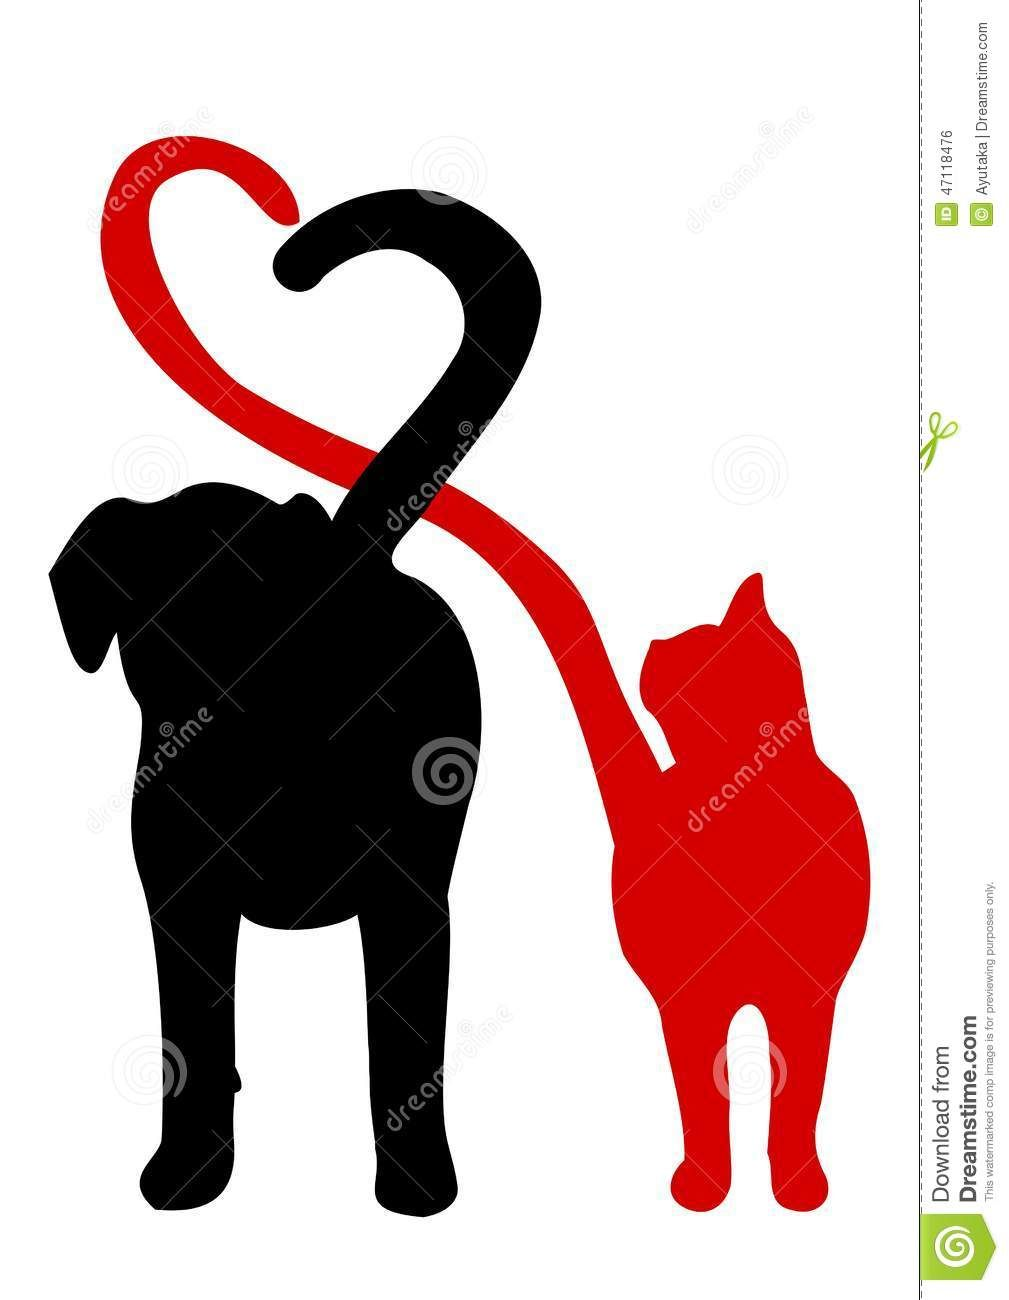 Illustration about Dog and cat silhouette making a heart in.